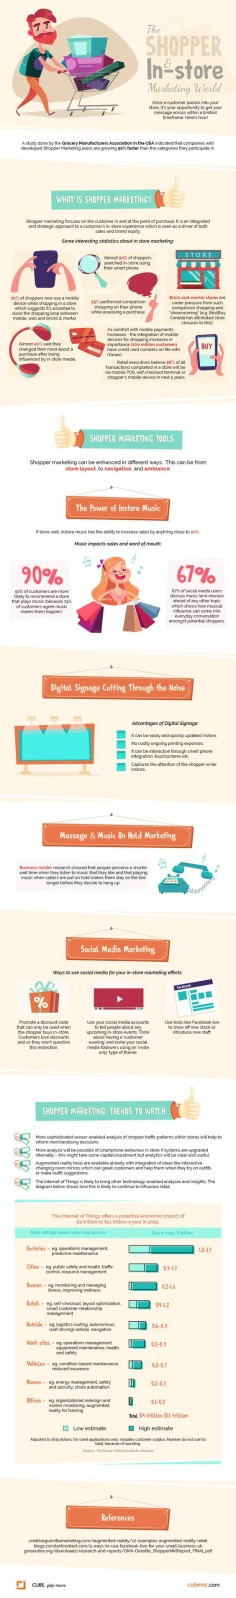 """This infographic from Cubemc is about the shopper and in-store marketing world and contains info regarding """"what is shopper marketing"""" as well as """"what are the tools and trends in shopper marketing."""""""